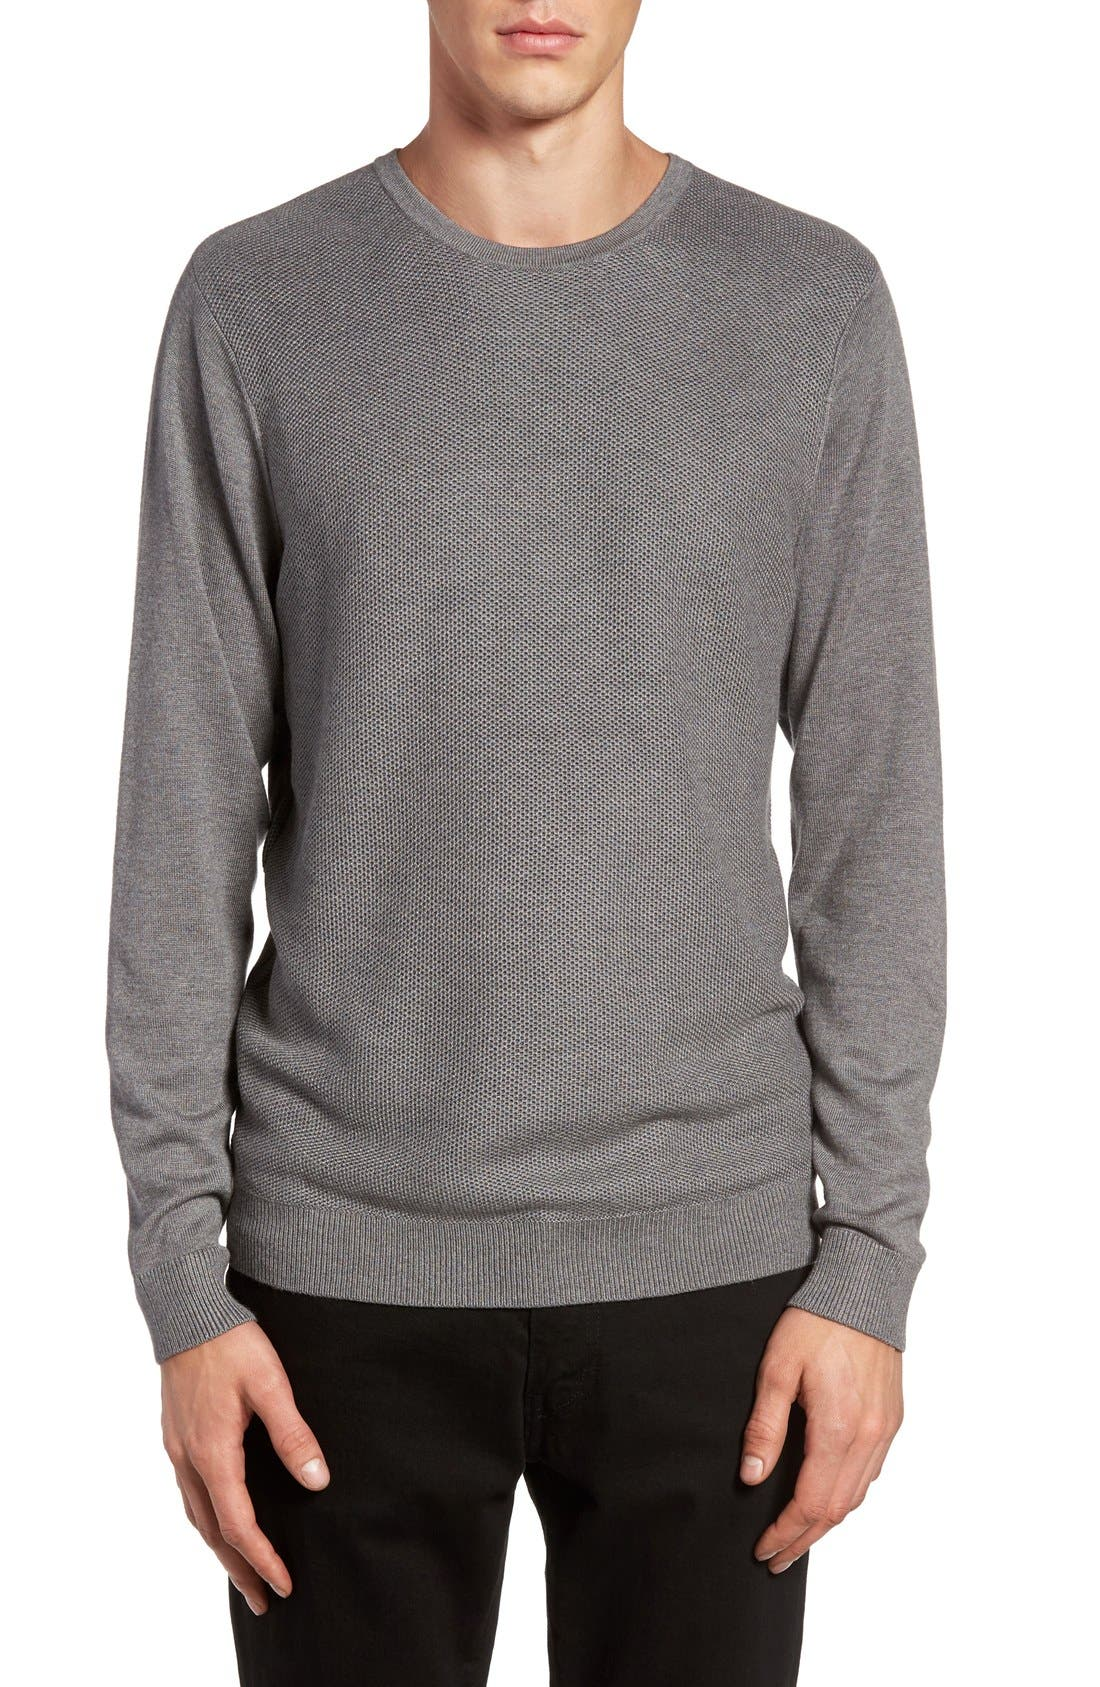 Honeycomb Stitch Crewneck Sweater,                             Main thumbnail 1, color,                             Grey Cloudy Heather